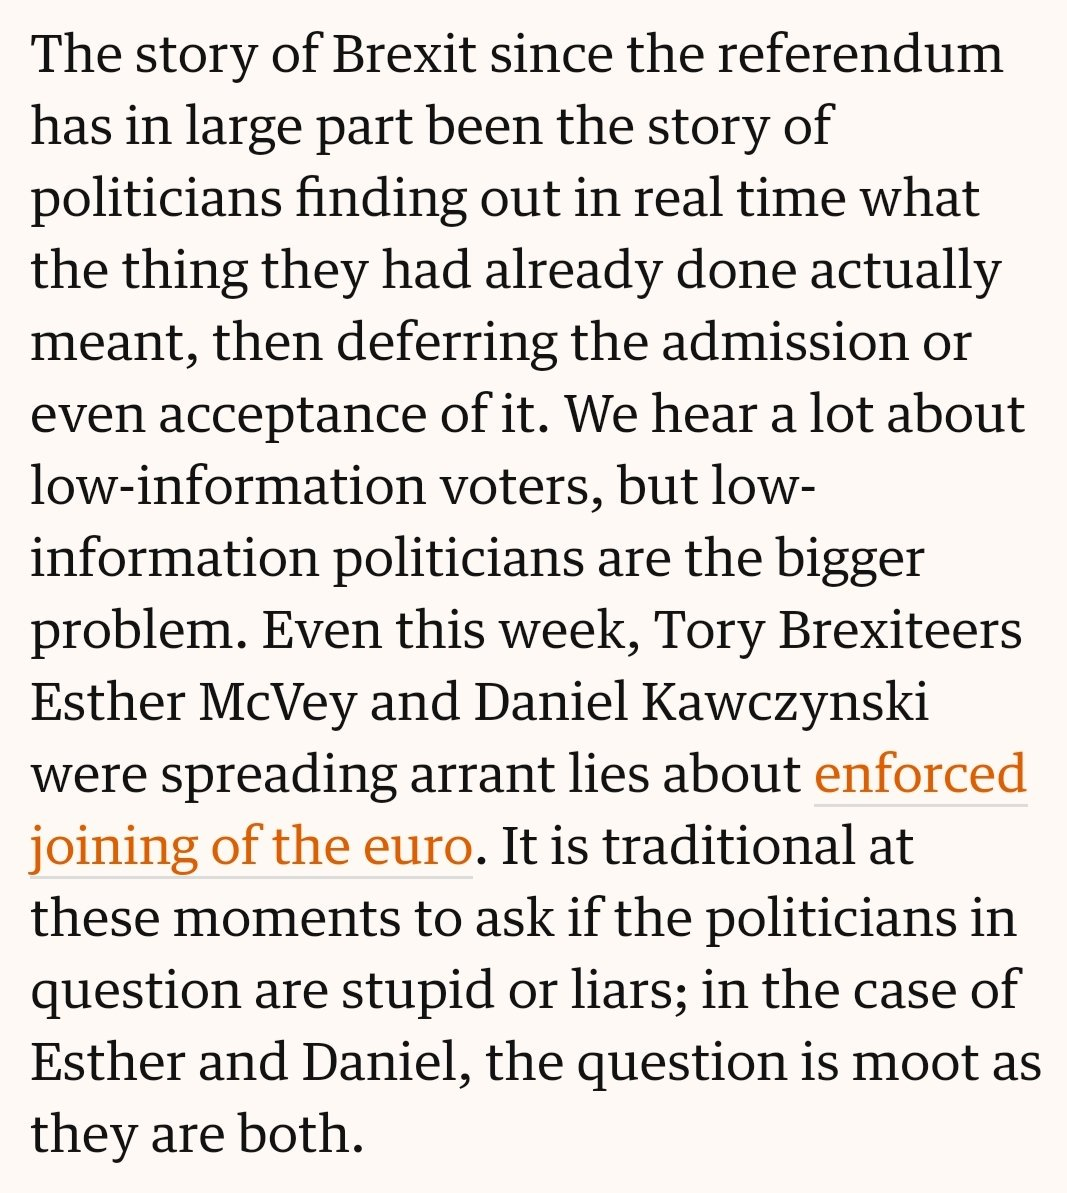 People always tweet the funny bits of @MarinaHyde's columns, but I prefer the cold, analytical fury. https://t.co/POynvkc3Gy